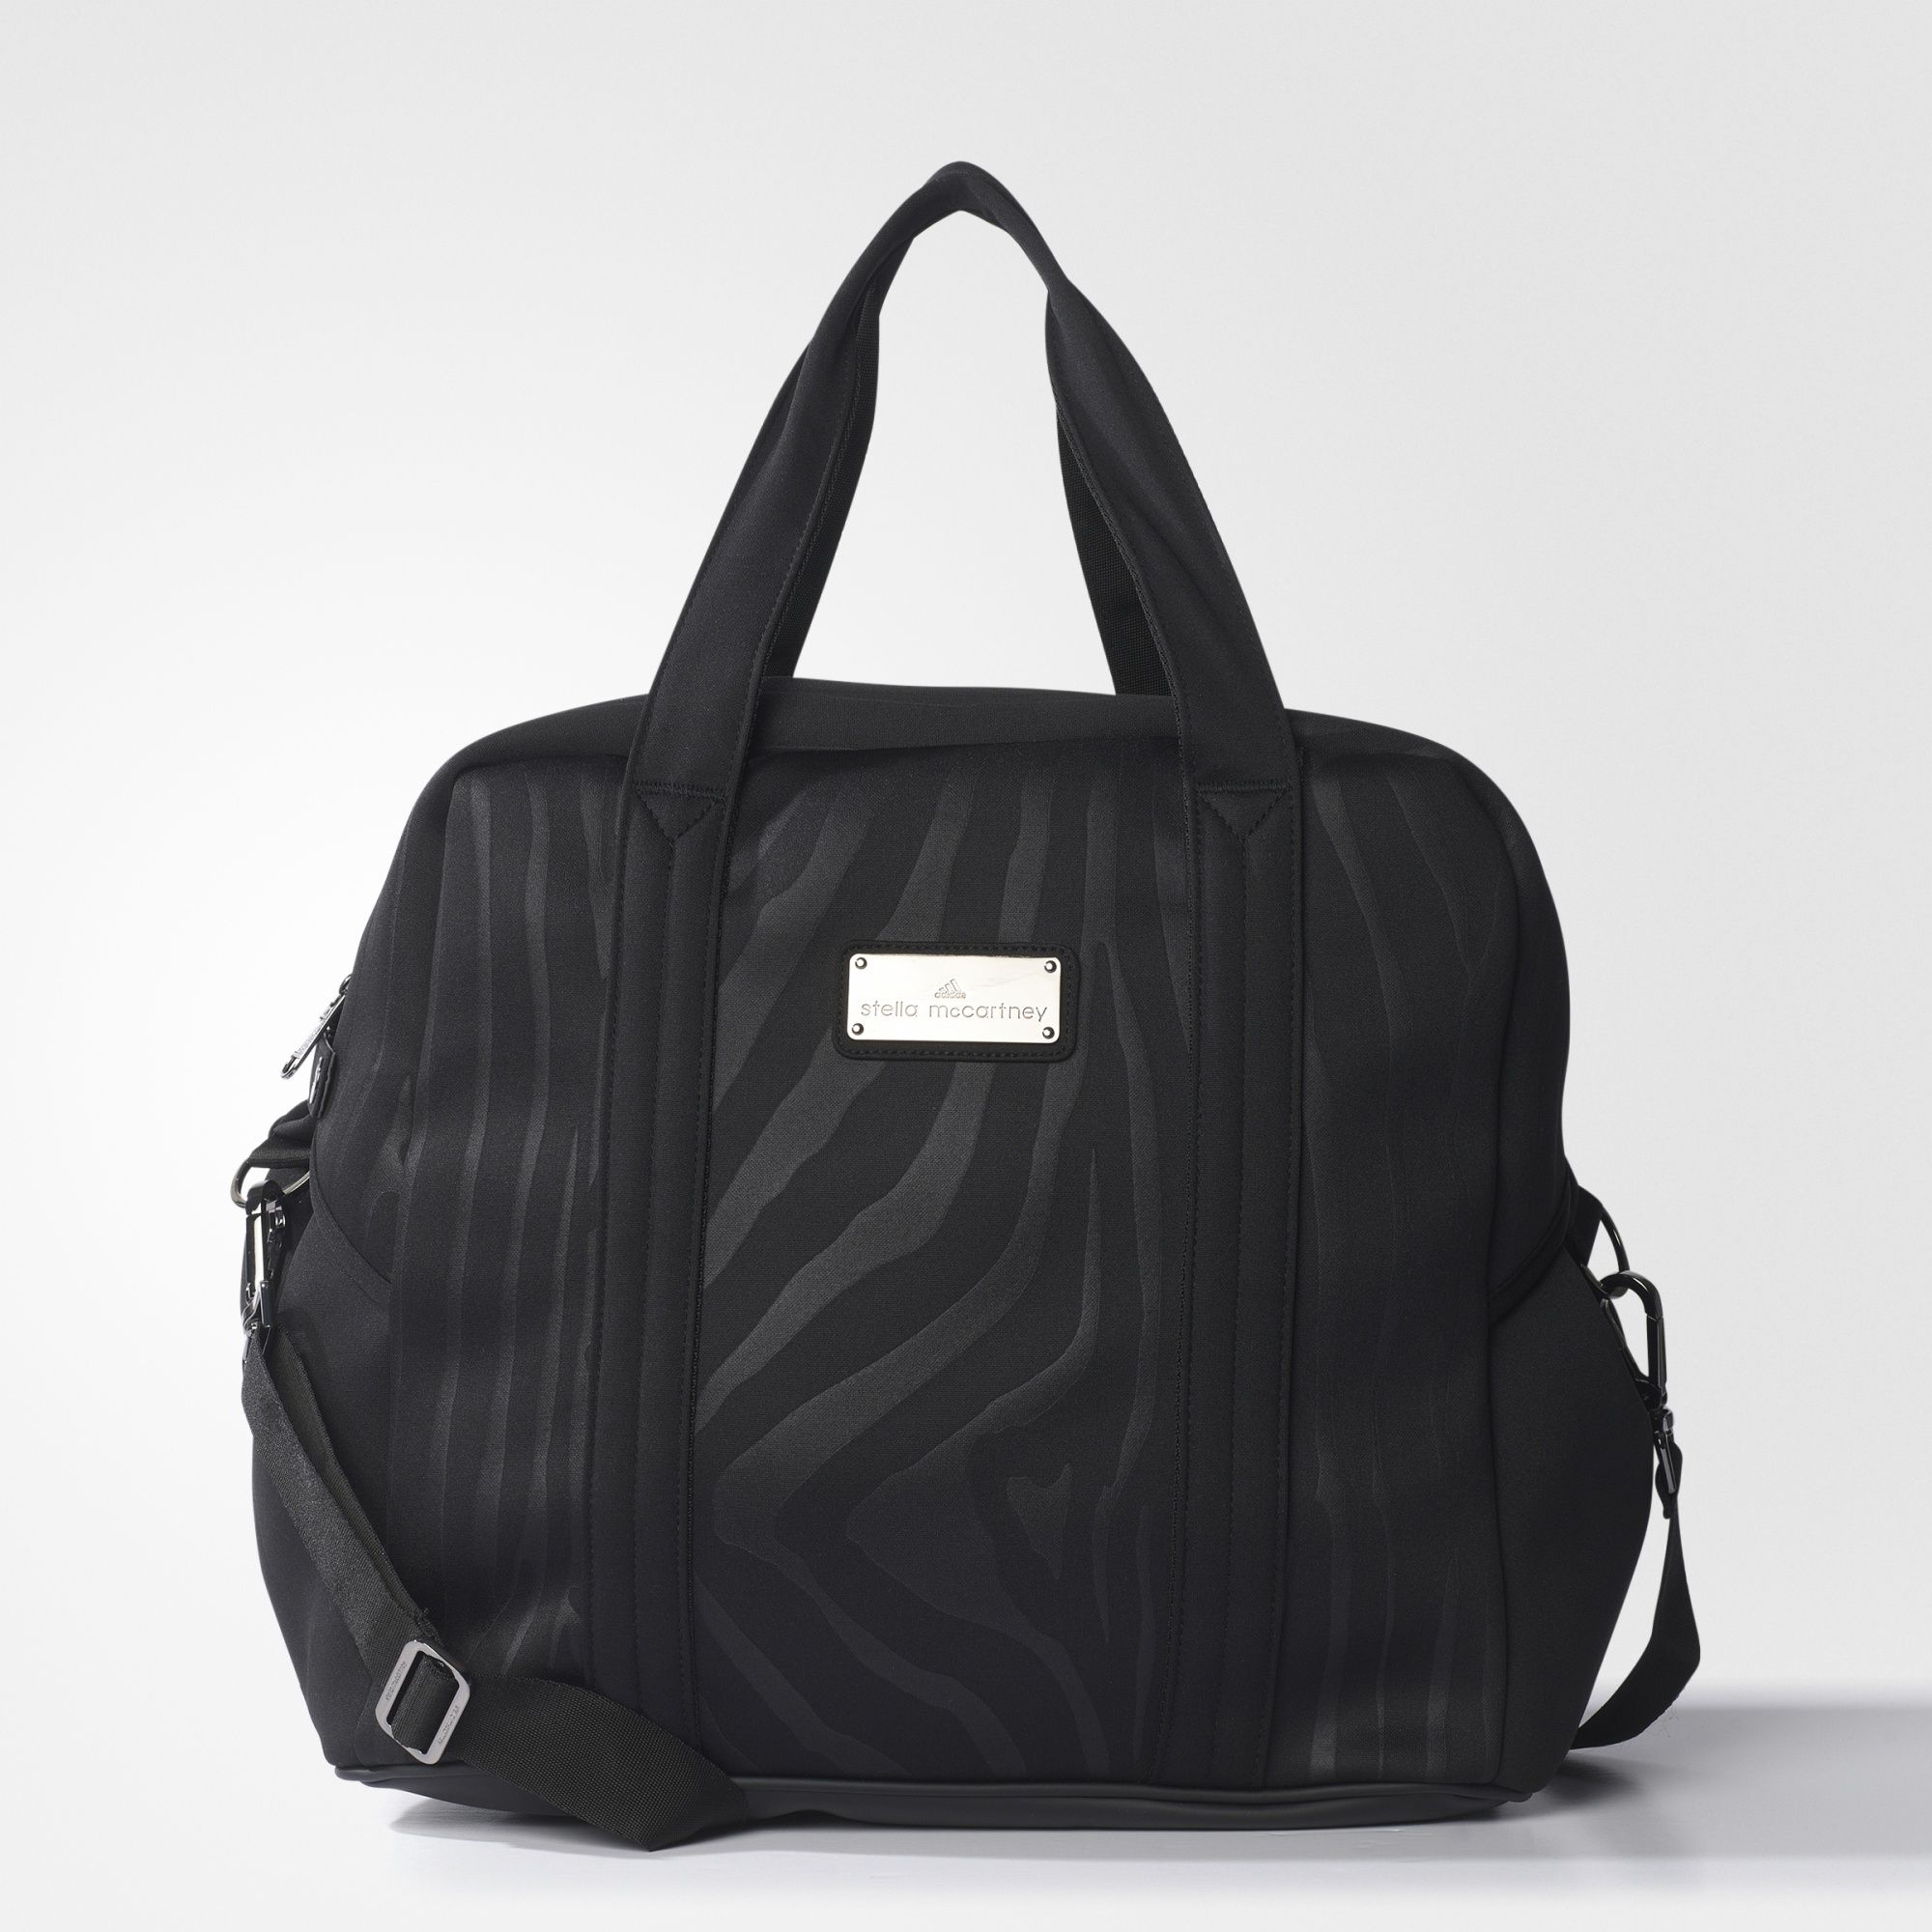 adidas SPORTS BAG M, new to site, more details coming soon ... bf746fddf4e